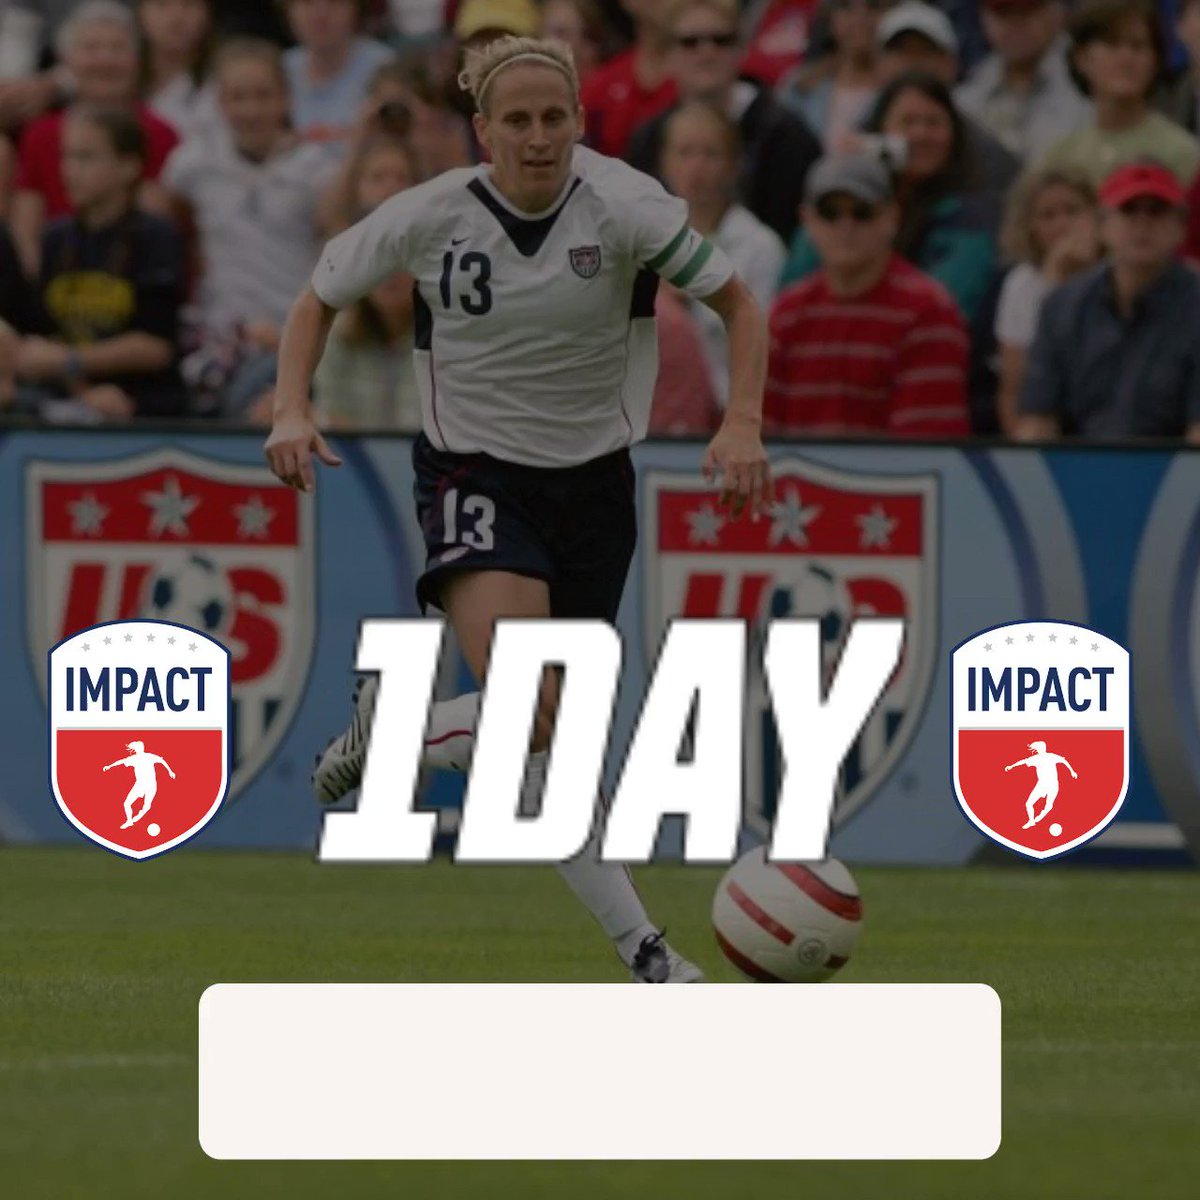 This event is open to the public! Please join us! @USClubSoccerNPL @USClubSoccer @USWNT @impact_npl #morethanaleague https://t.co/P3Uai1qh4L